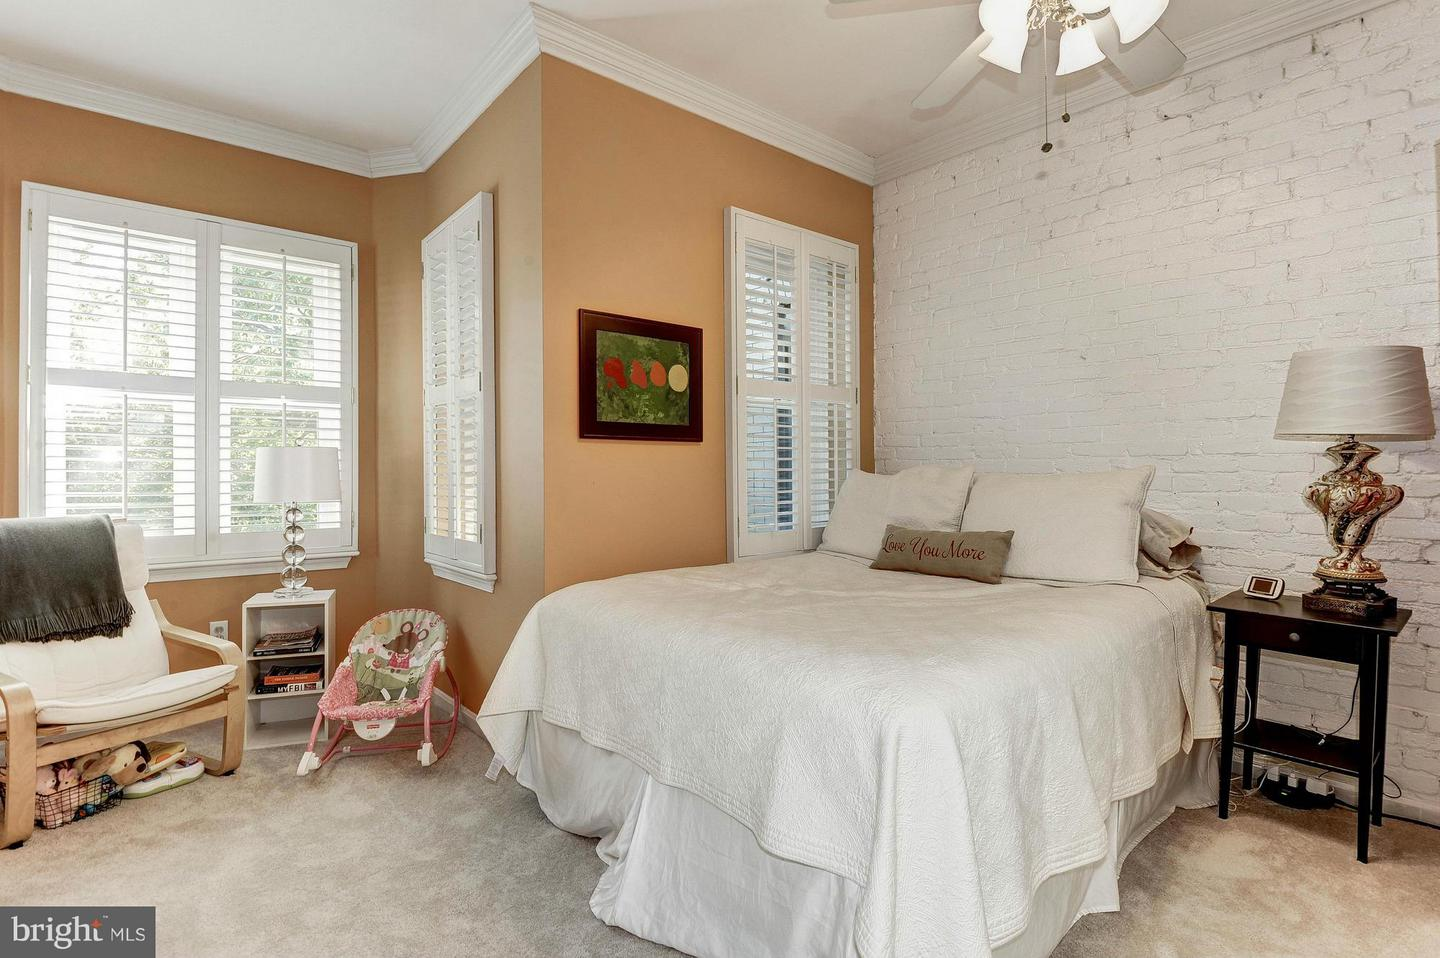 Additional photo for property listing at 624 7th St NE 624 7th St NE Washington, District Of Columbia 20002 United States